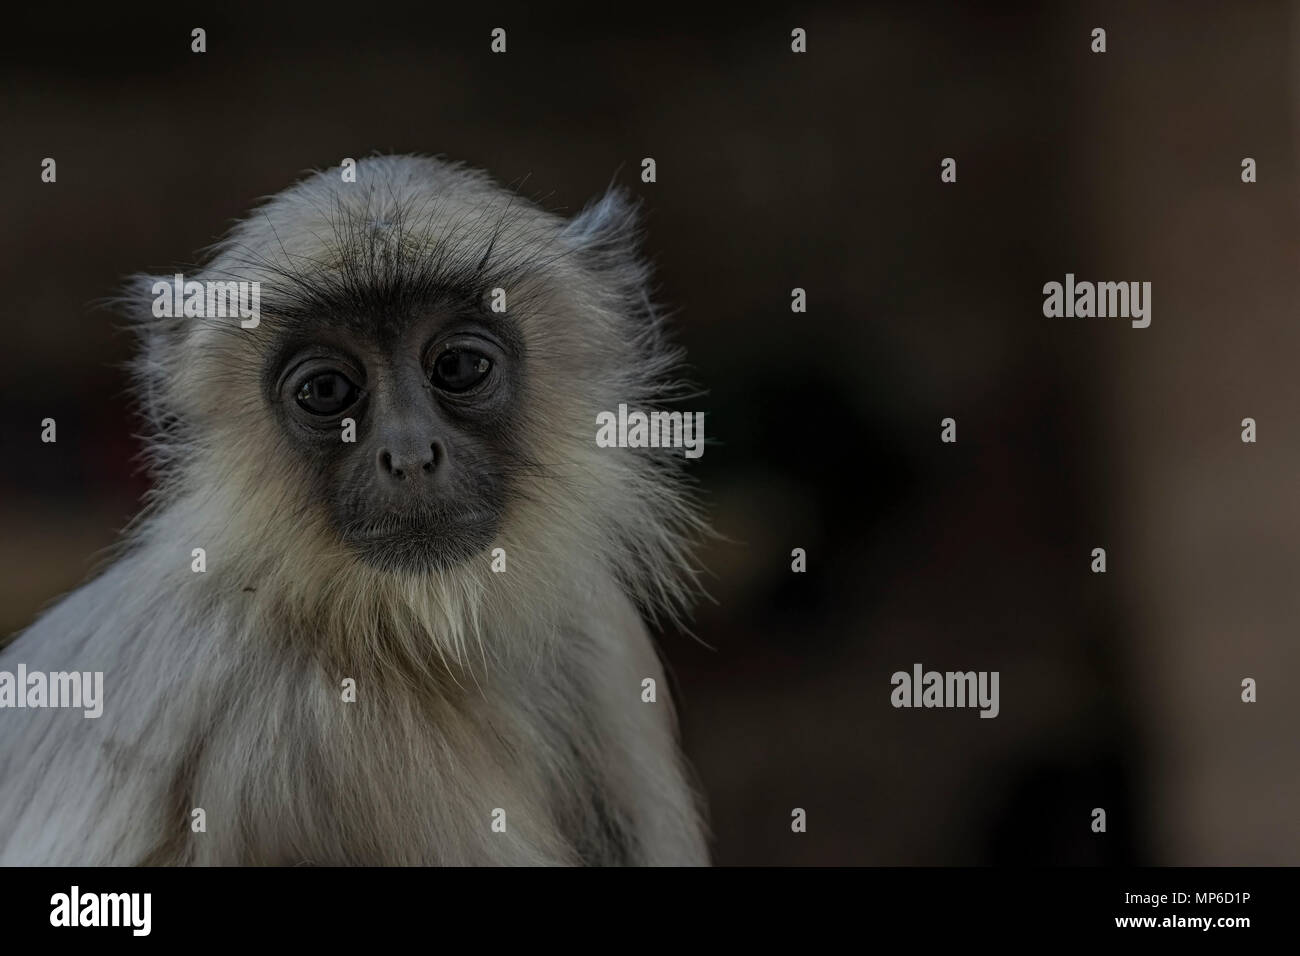 Gray langurs (Semnopithecus) or Hanuman langurs, the most widespread langurs of the Indian Subcontinent. - Stock Image